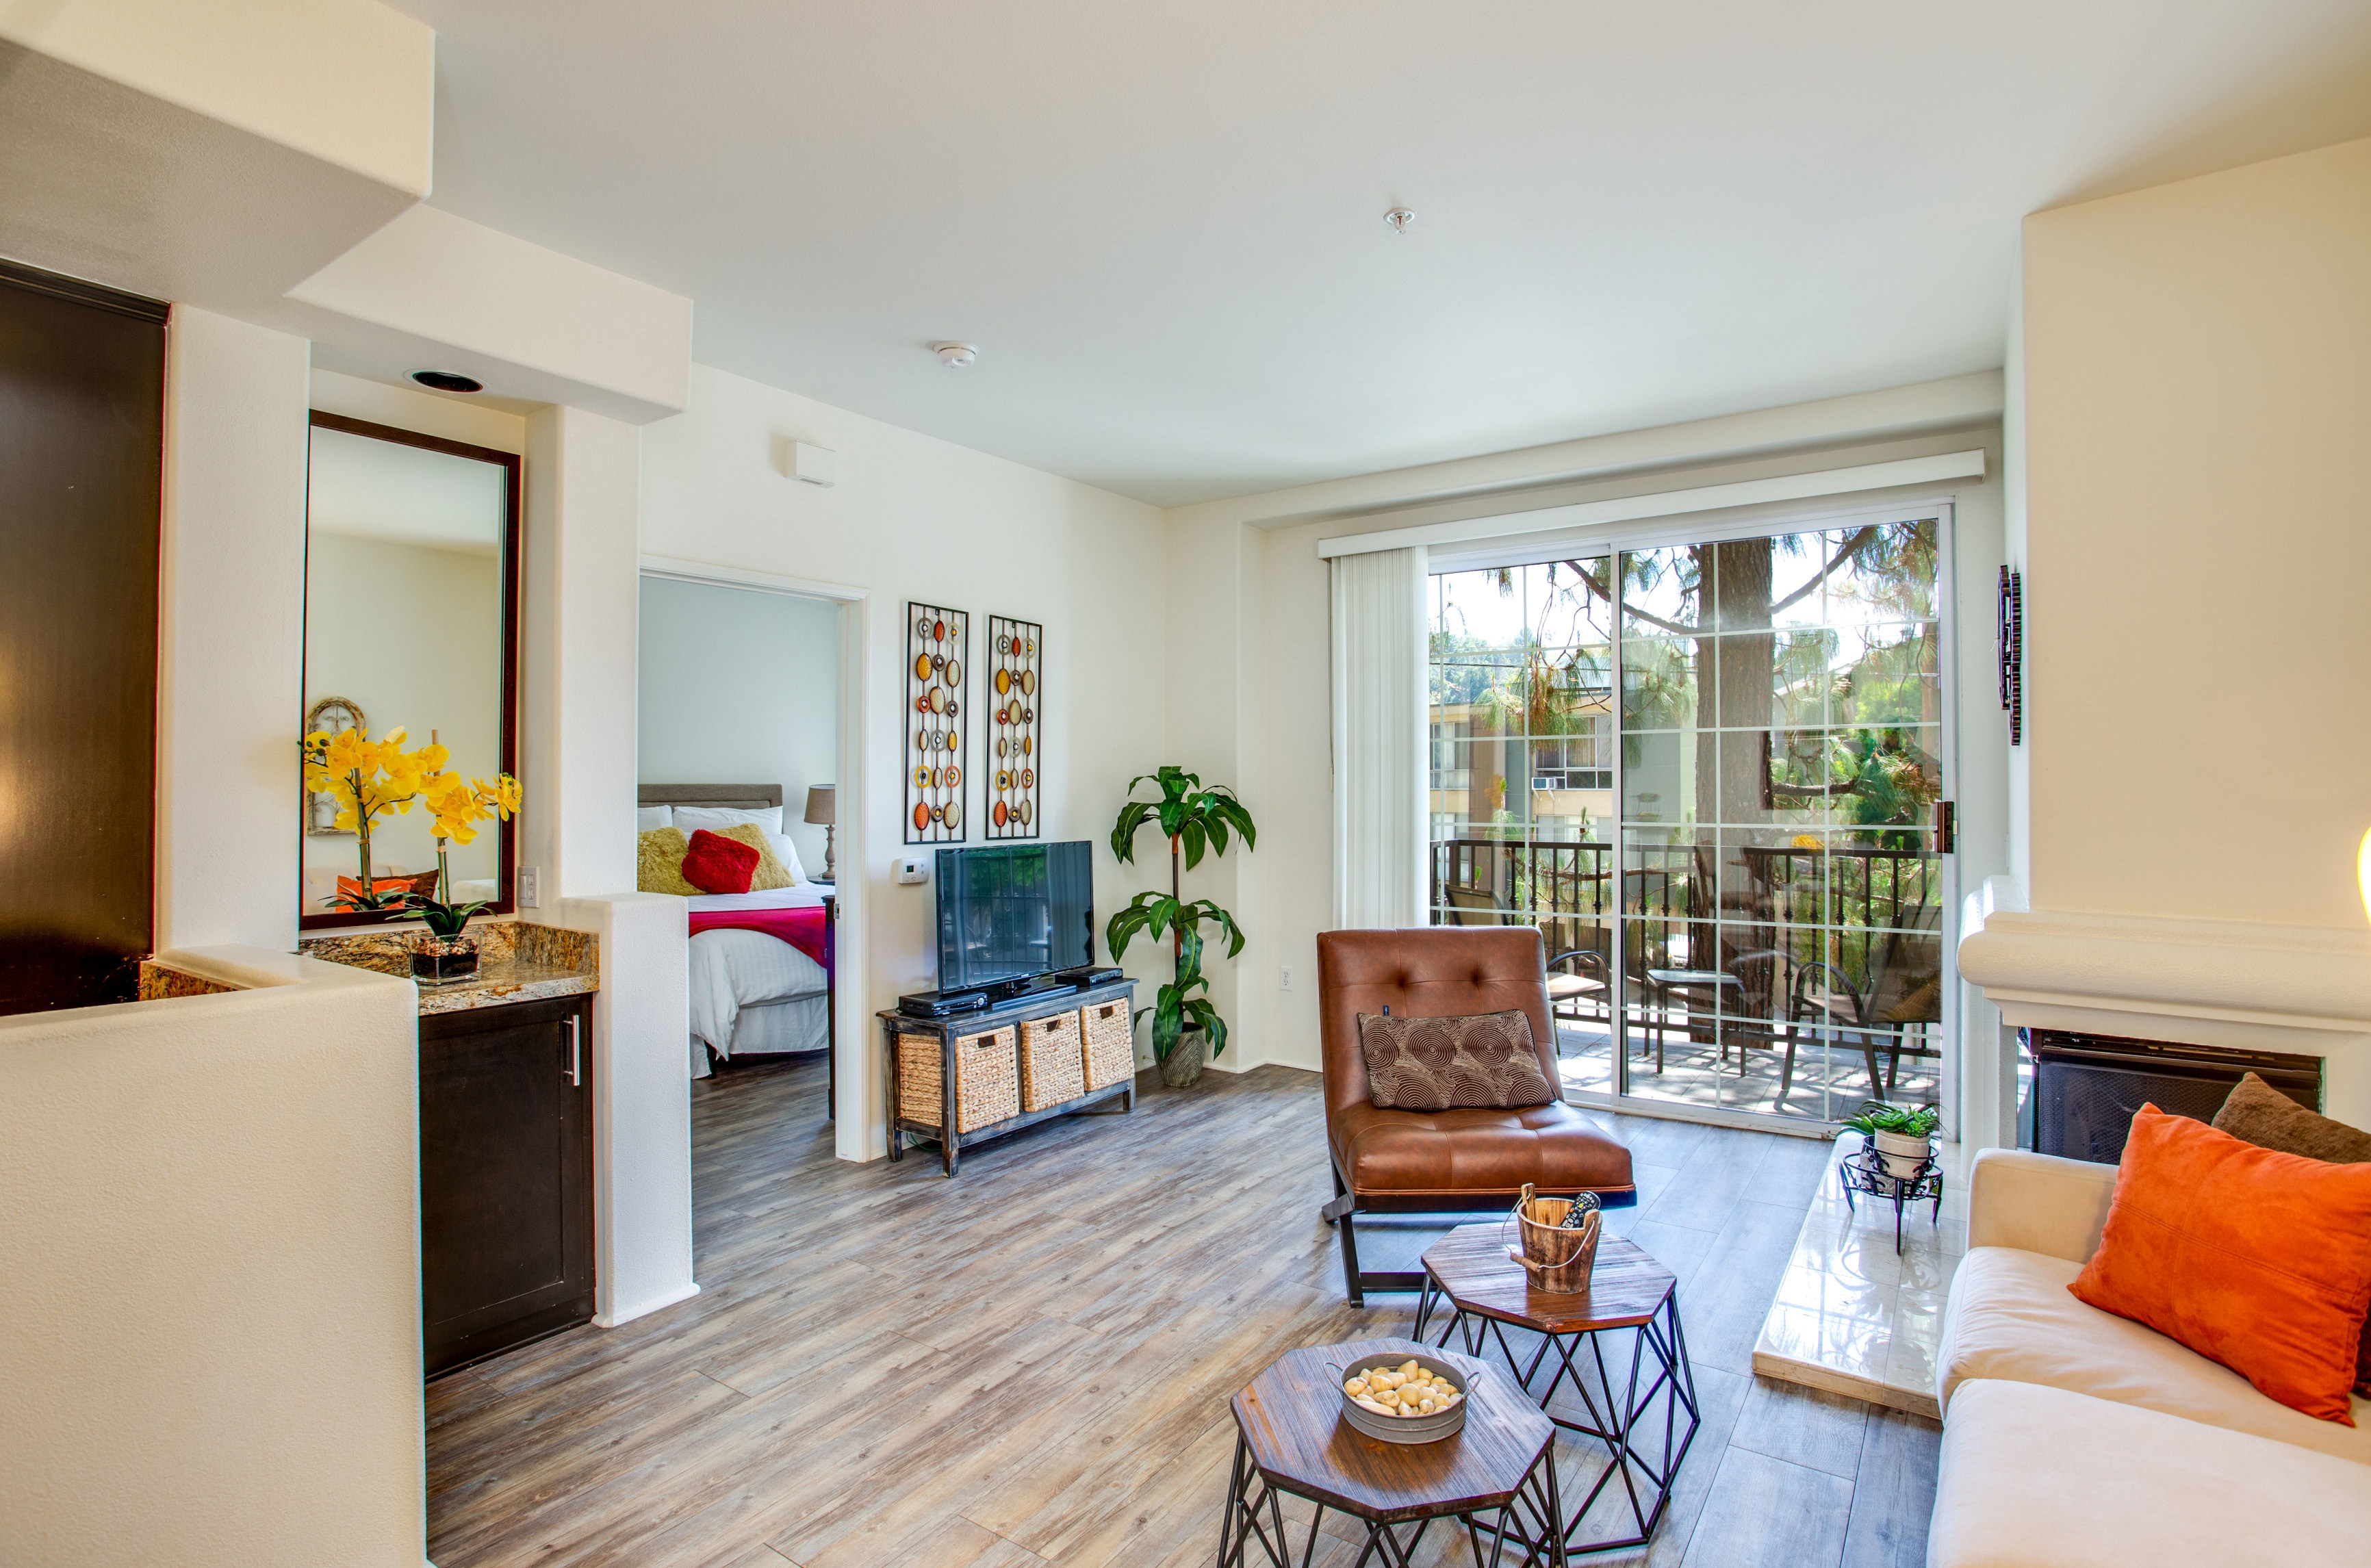 100 Best Studio Apartments in Los Angeles, CA (with pics)!